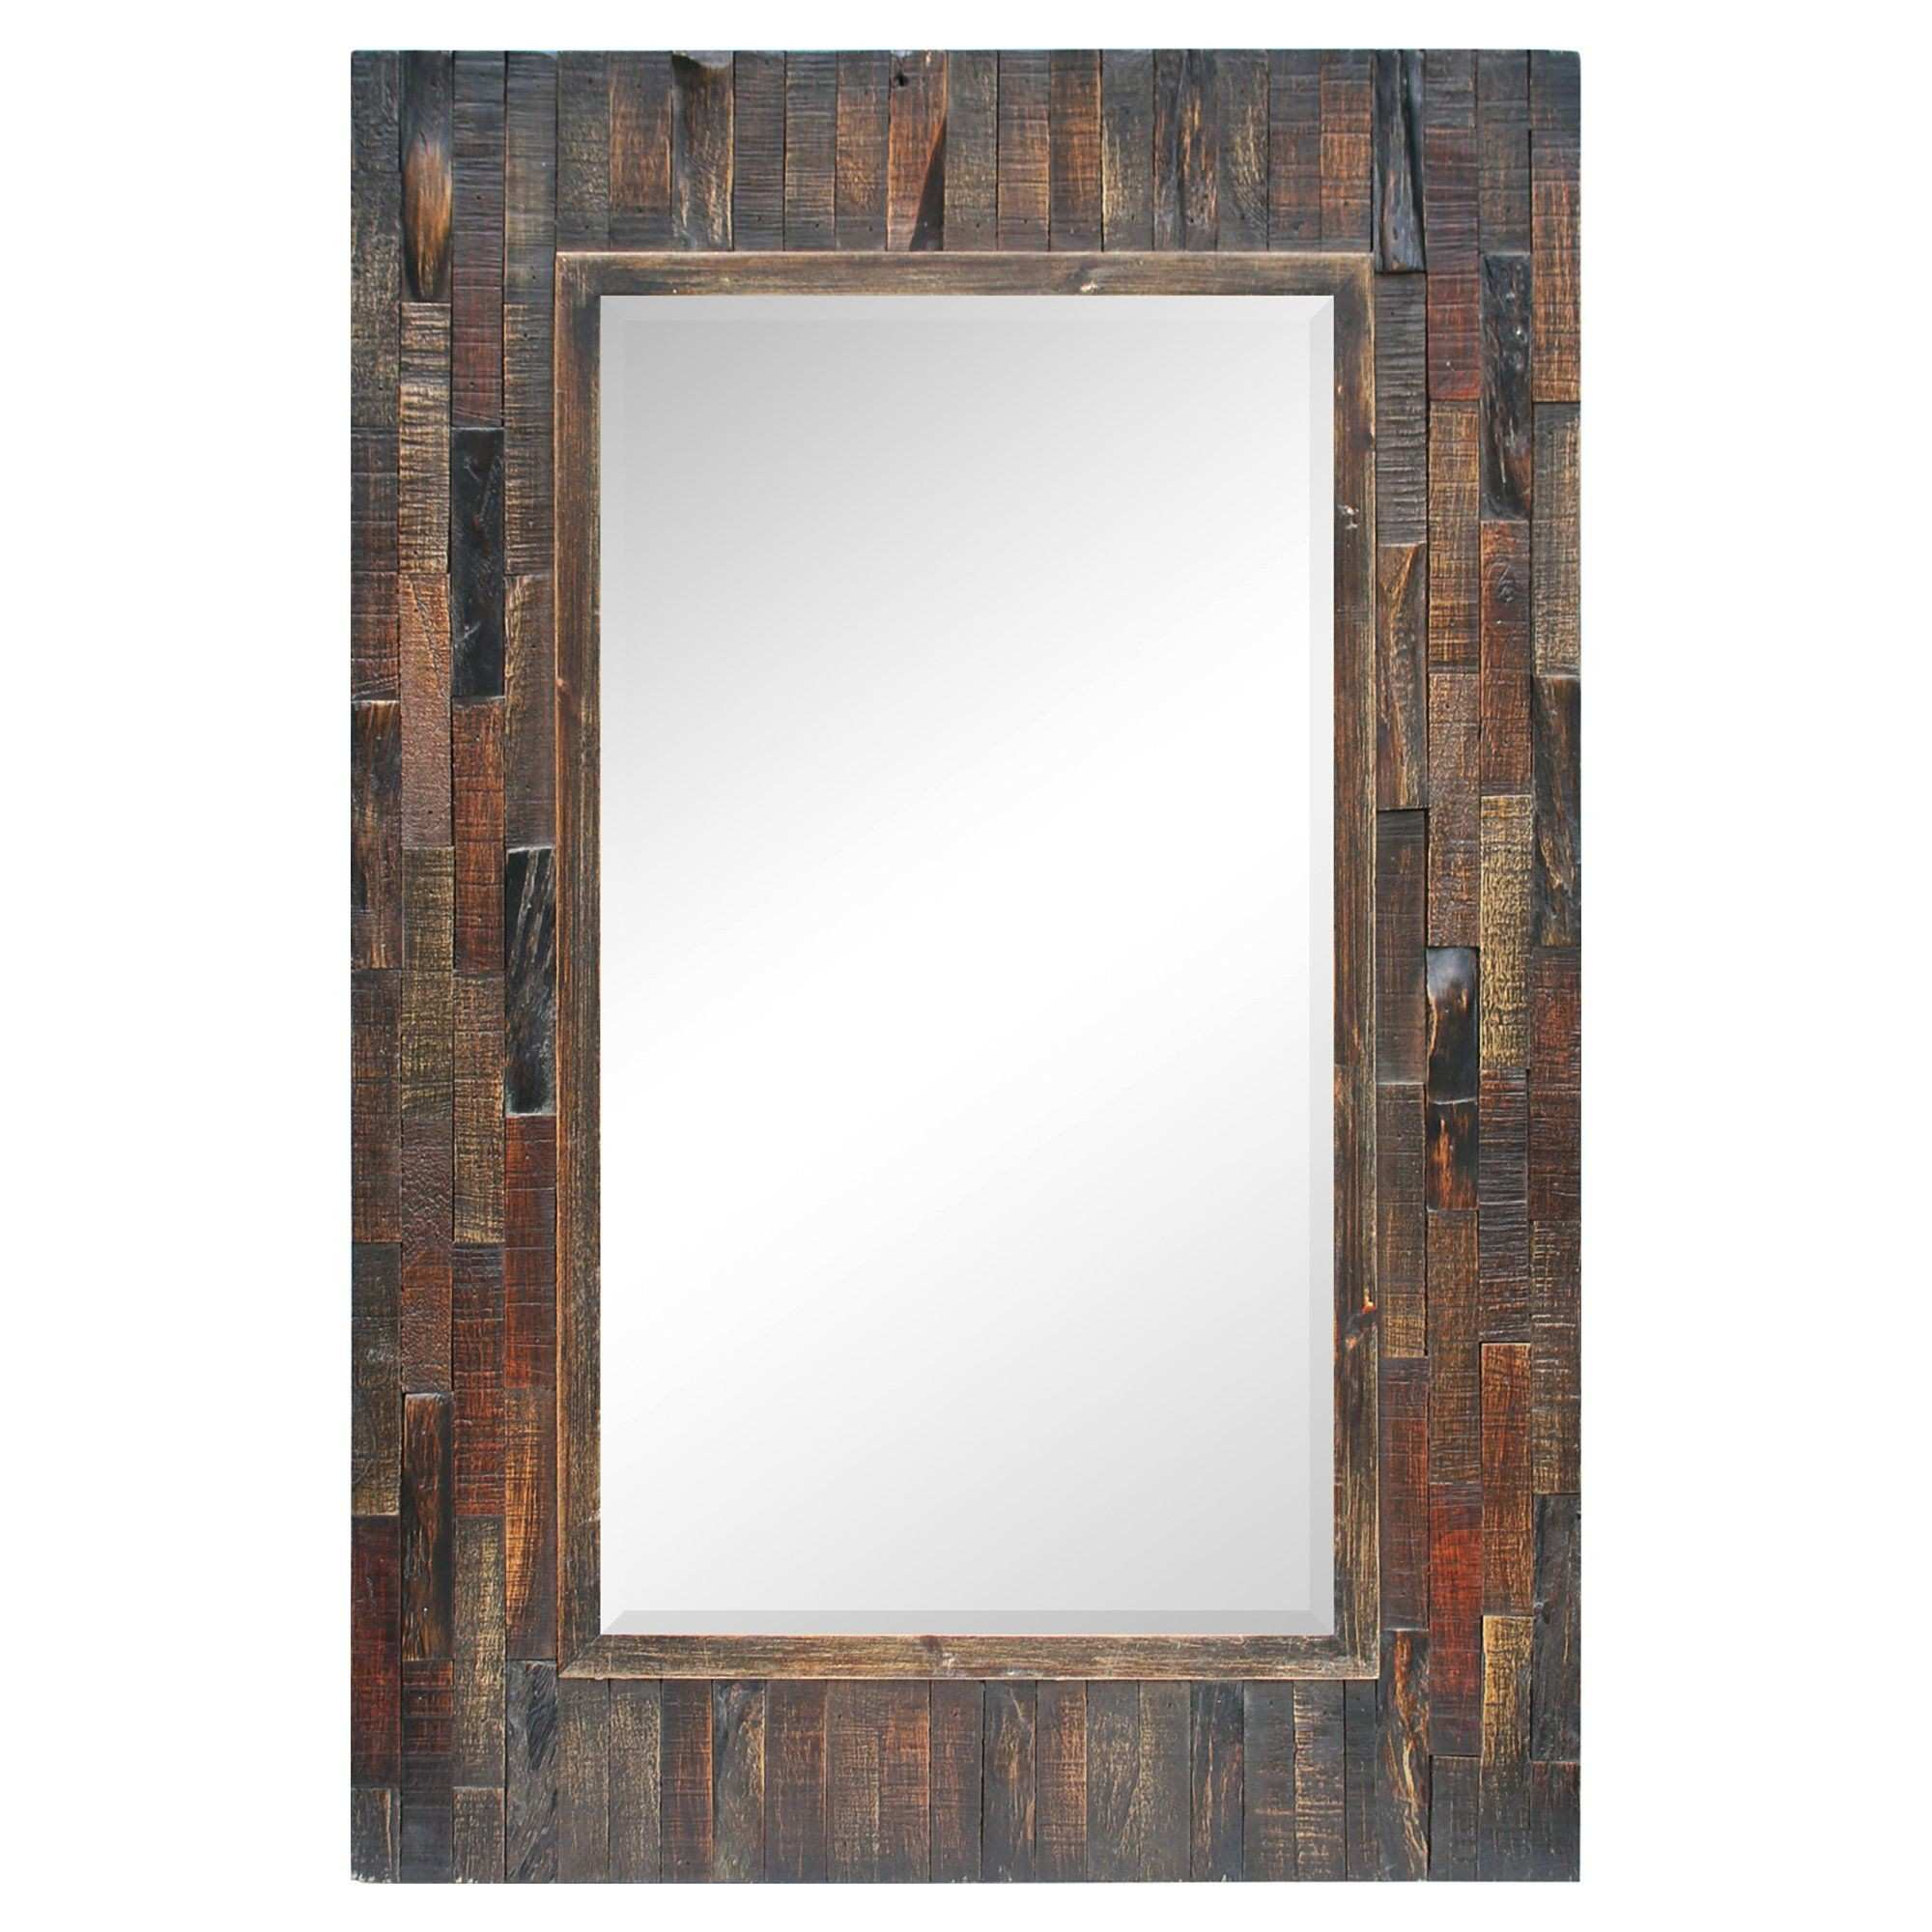 Fallon & Rose Cheri Mirror Awesome products selected by